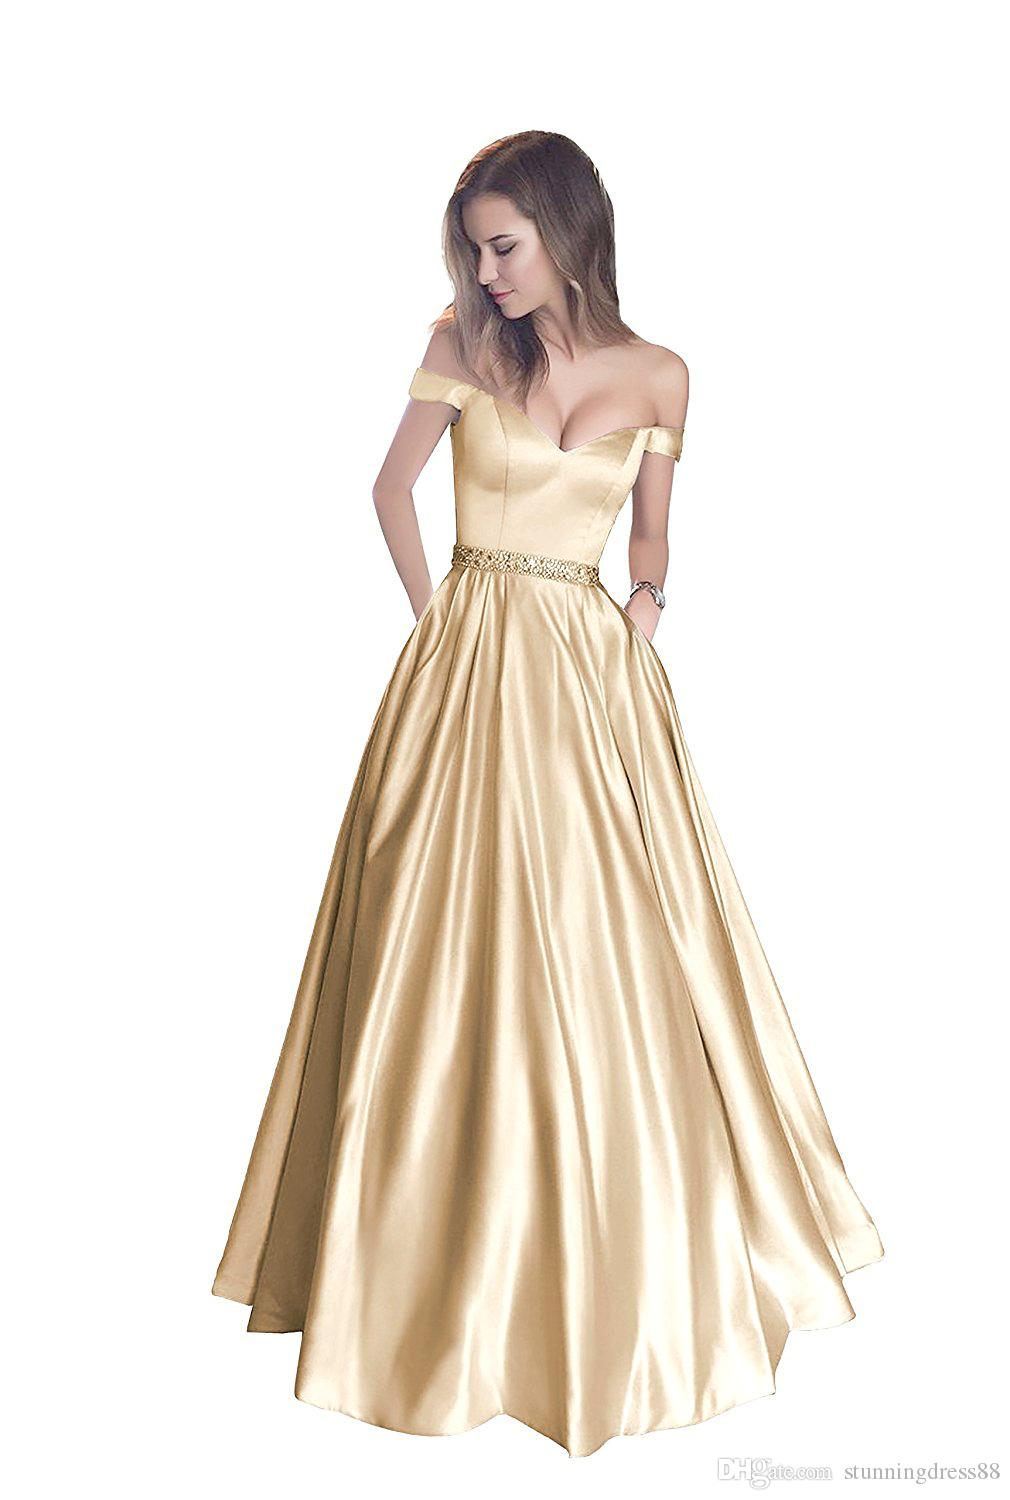 Gold Simple Cheap Prom Dresses Long 2020 Off the shoulder With Pockets Sweetheart A line Crystal Ribbon Sash Short Sleeves Evening Gowns